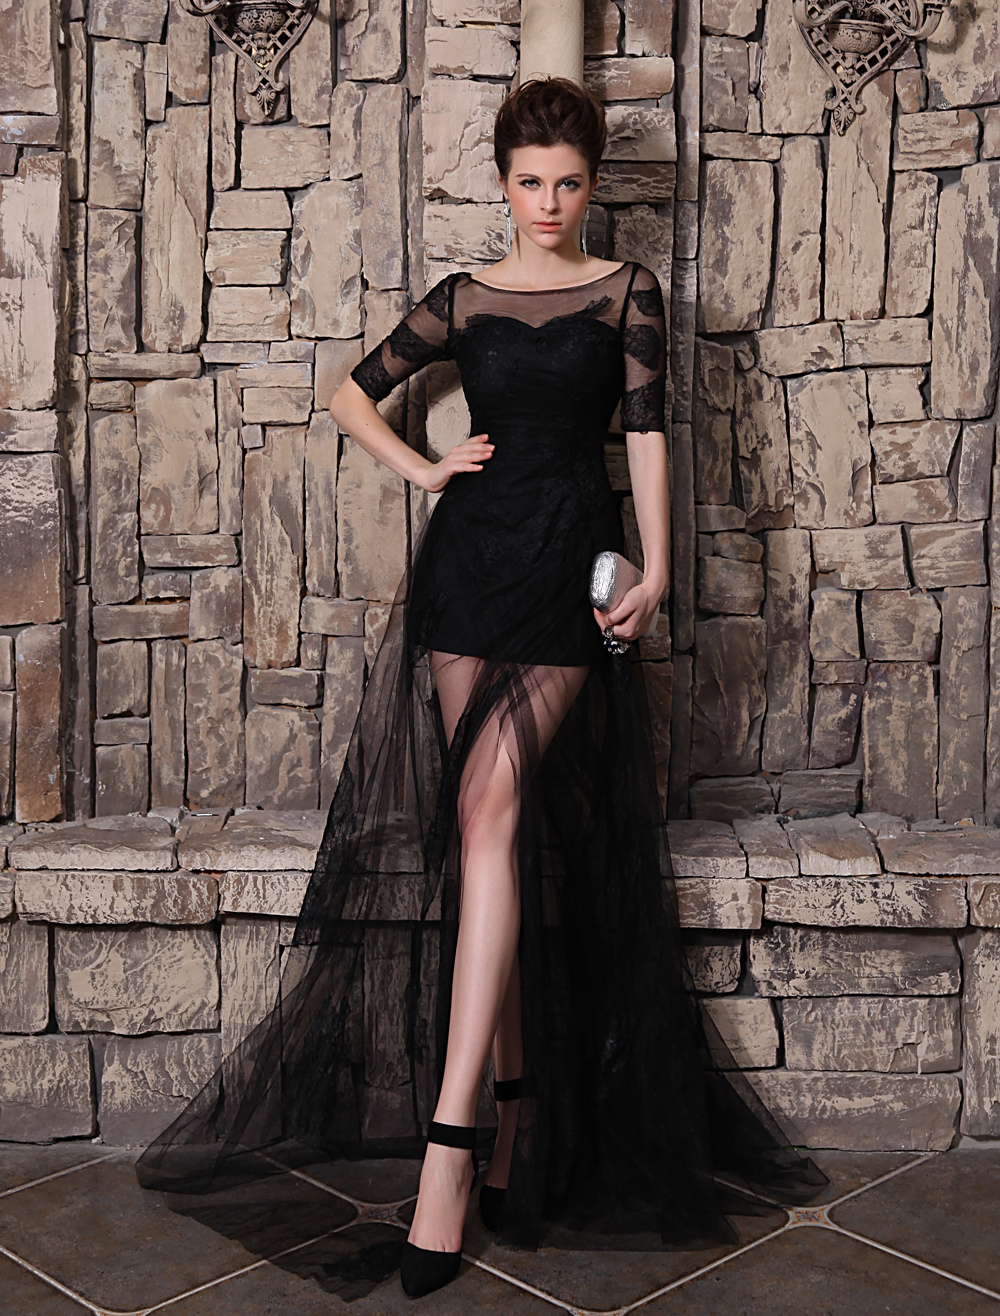 Black Evening Dress A-Line Tulle Front Split Half Sleeves Illusion Neckline Skirt Milanoo